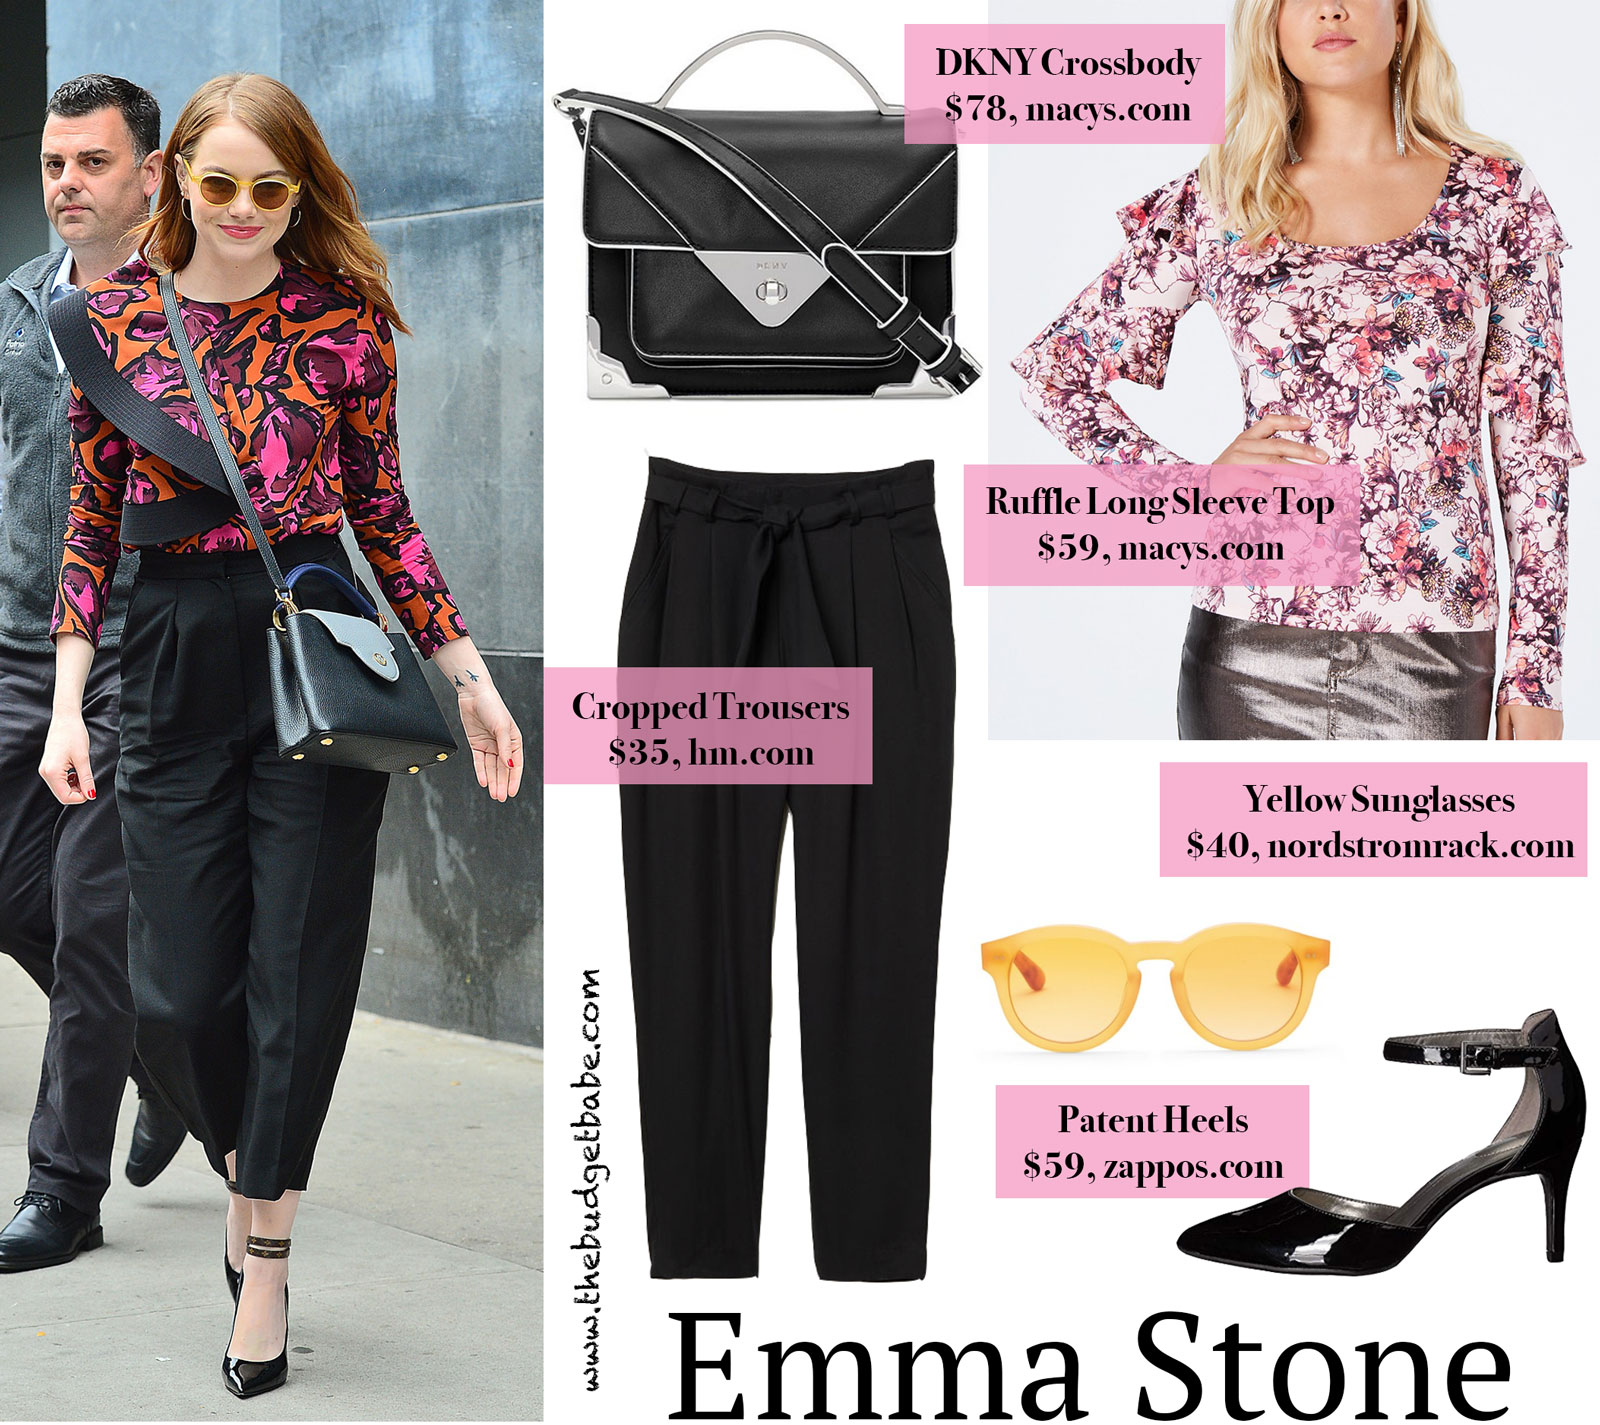 7ef7fec8e10 Emma Stone Ruffle Top and Black Trousers Look for Less